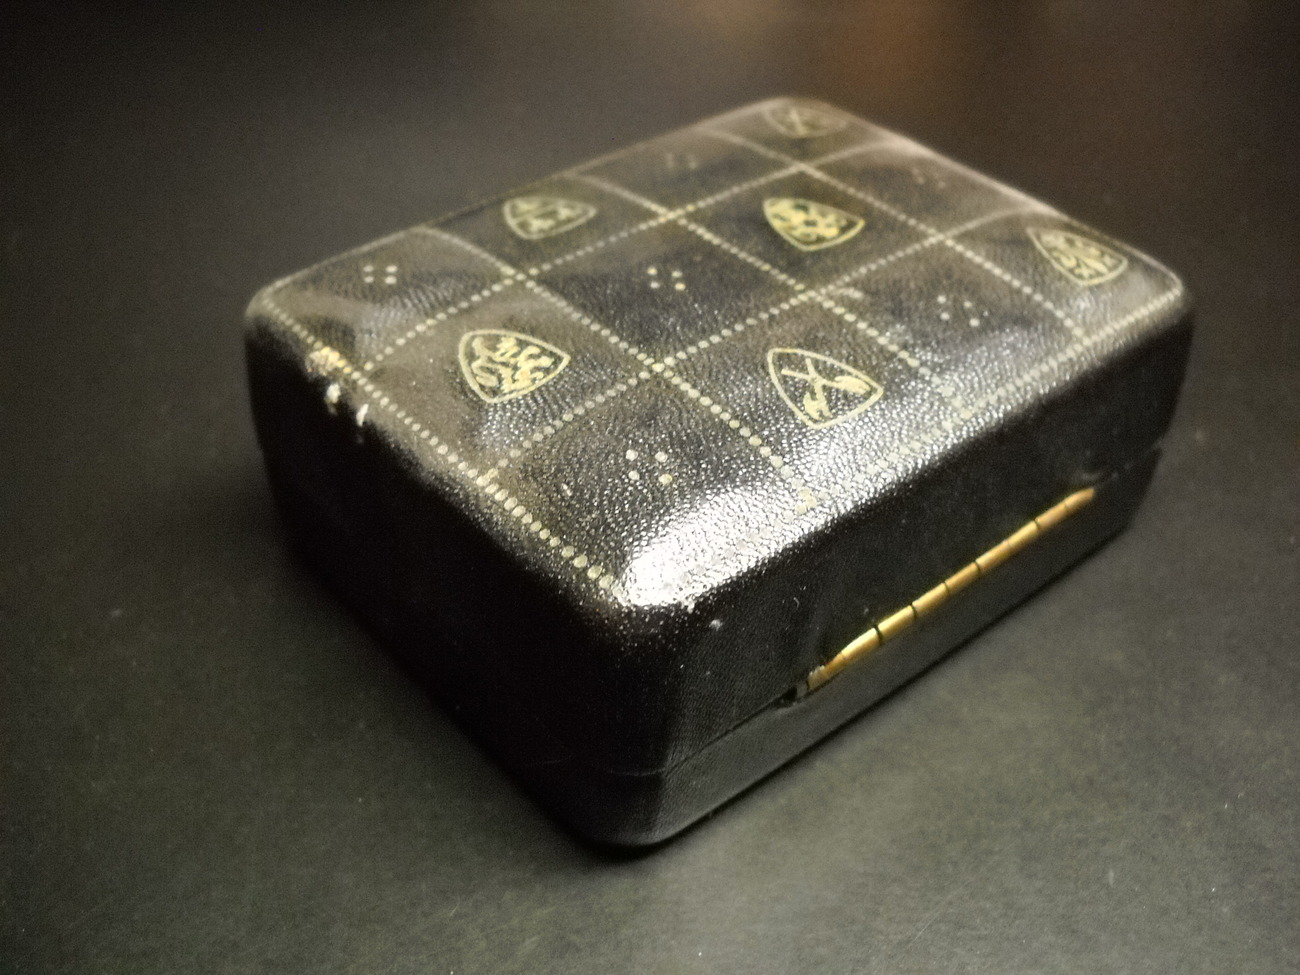 Swank Cuff Links and Tie Bar Golden and Black Metal Knot Look Presentation Box